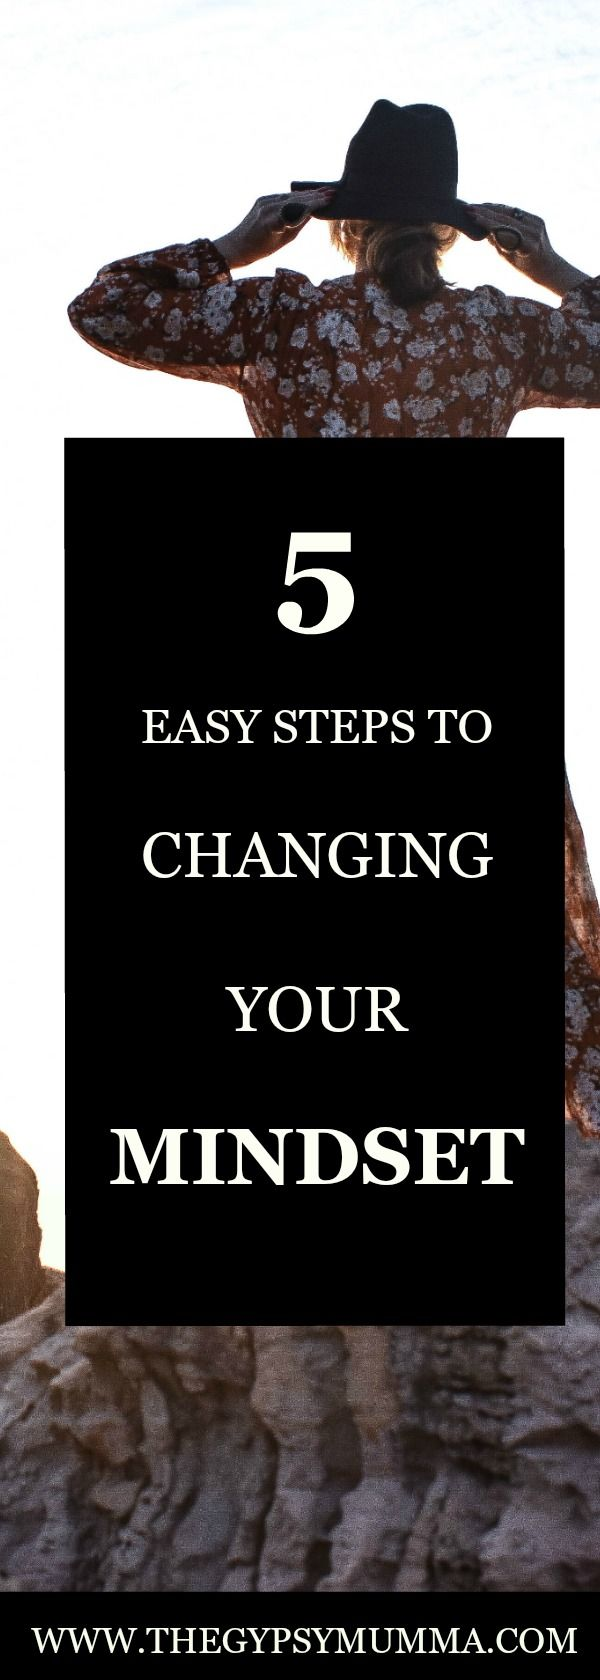 5 Easy Steps to Changing Your Mindset. Mindfulness